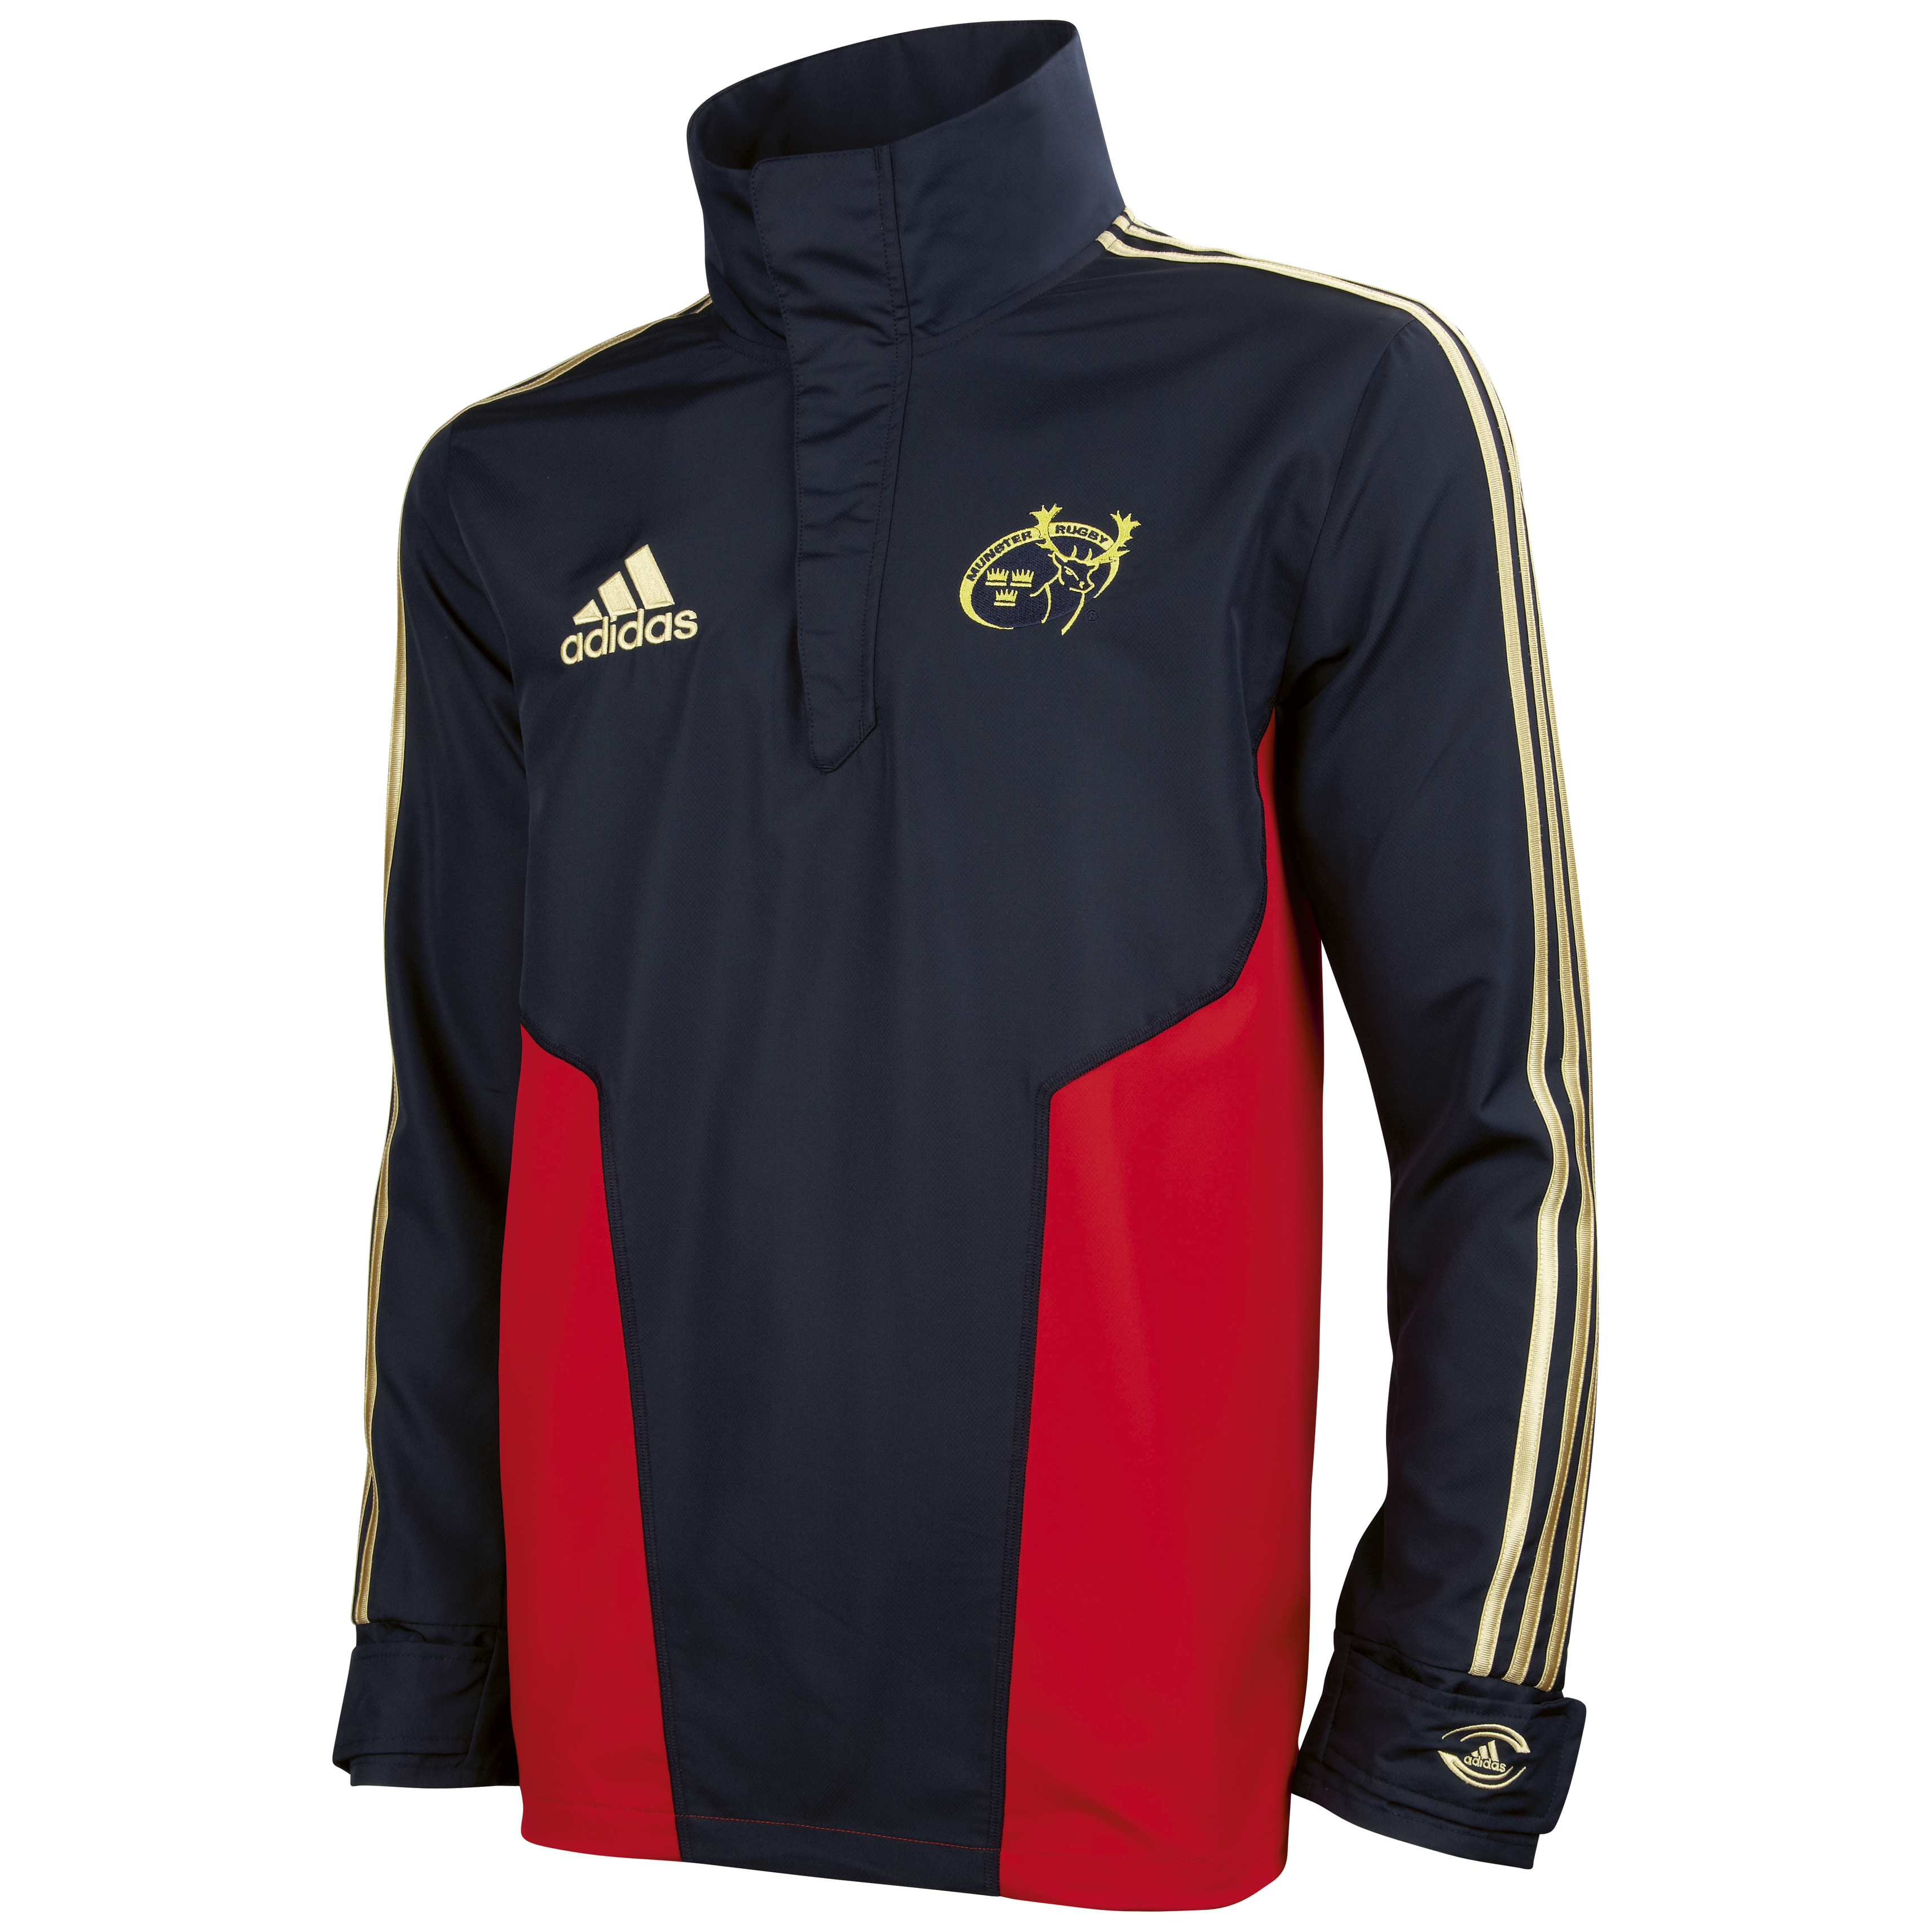 Munster Windbreaker - Dark Navy/Collegiate Red/Light Football Gold